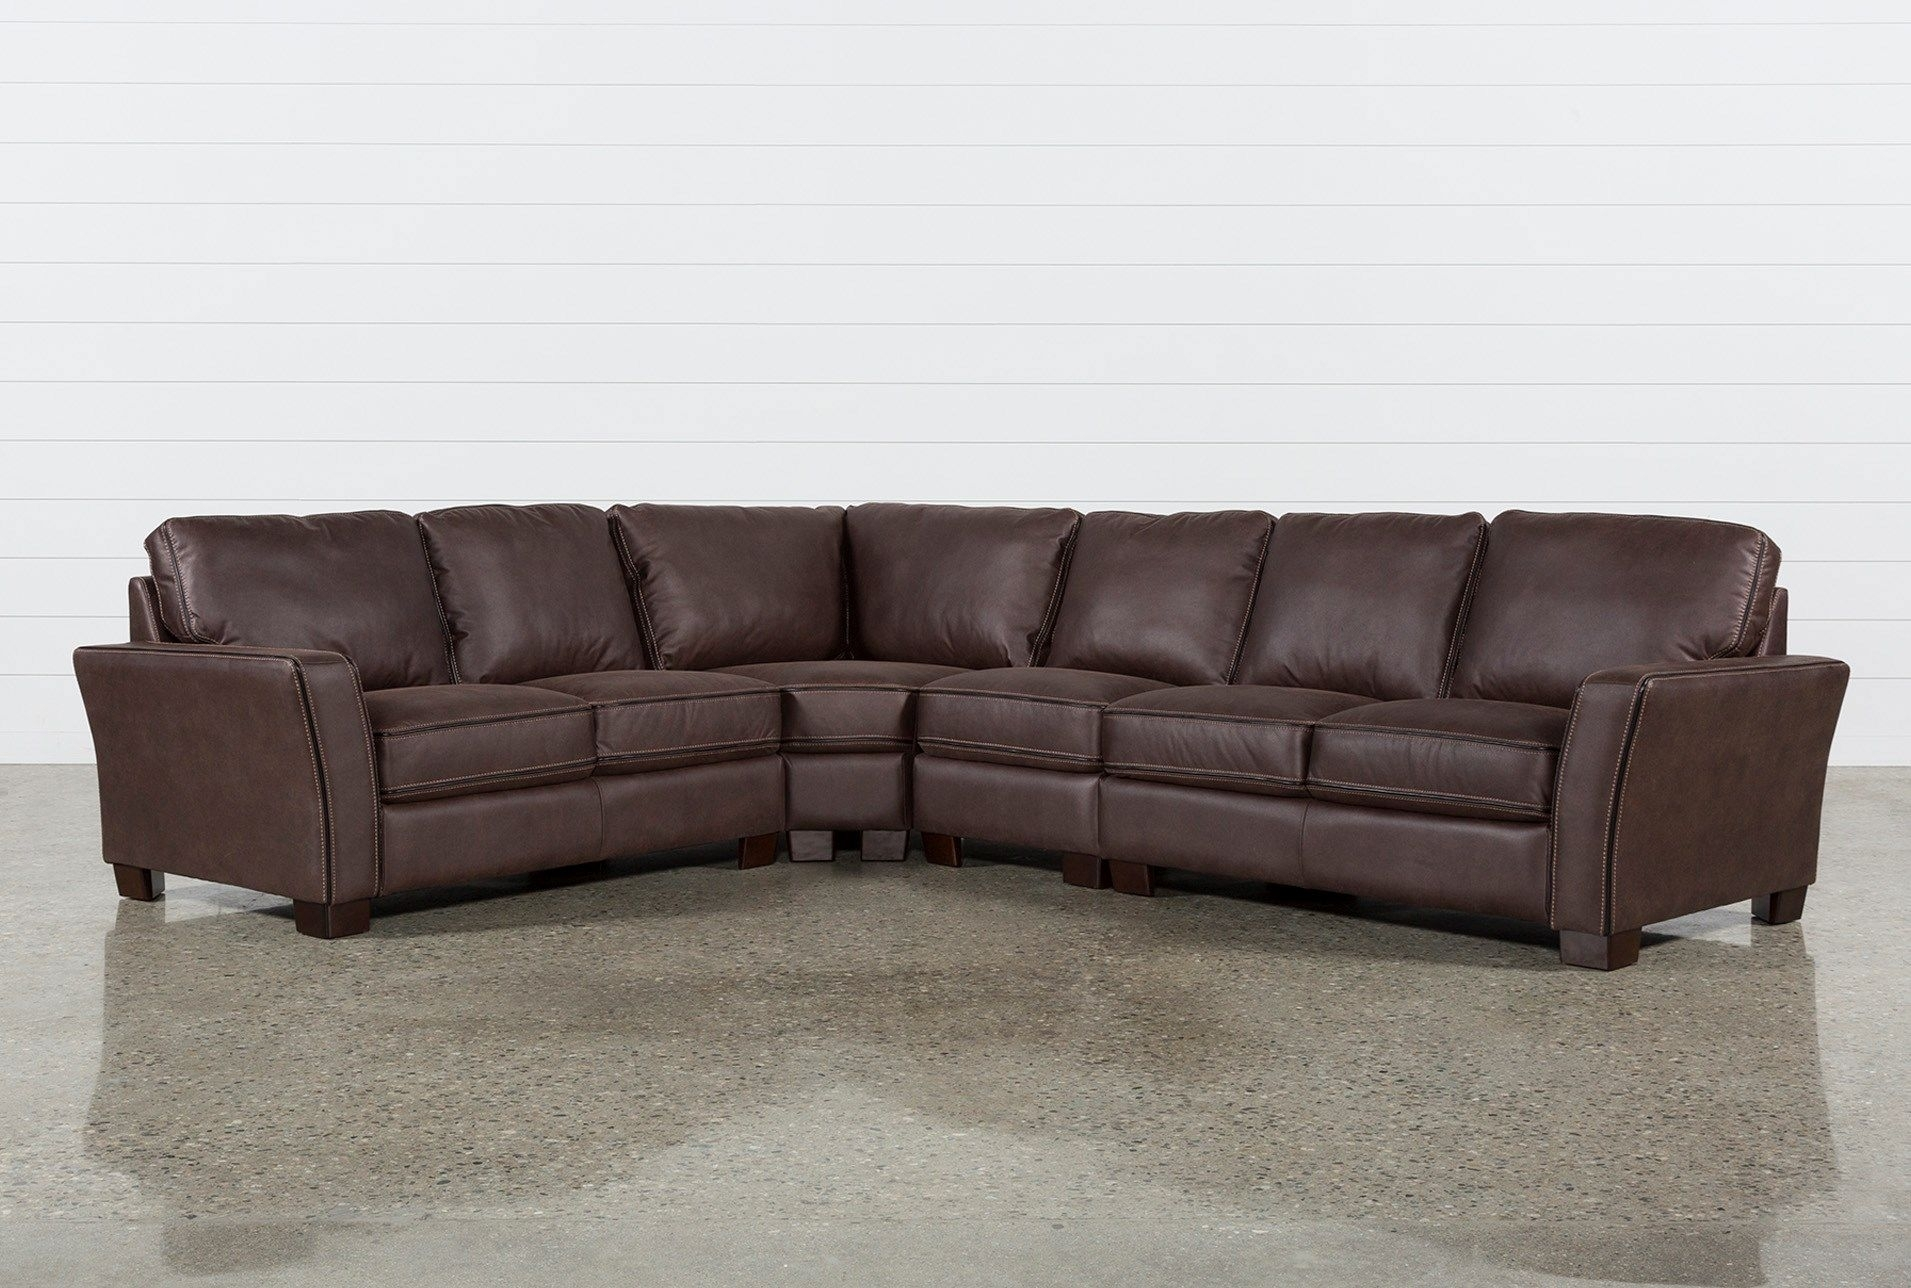 Blaine 4 Piece Sectional | House: Living Room | Pinterest | 3 Piece intended for Karen 3 Piece Sectionals (Image 5 of 30)